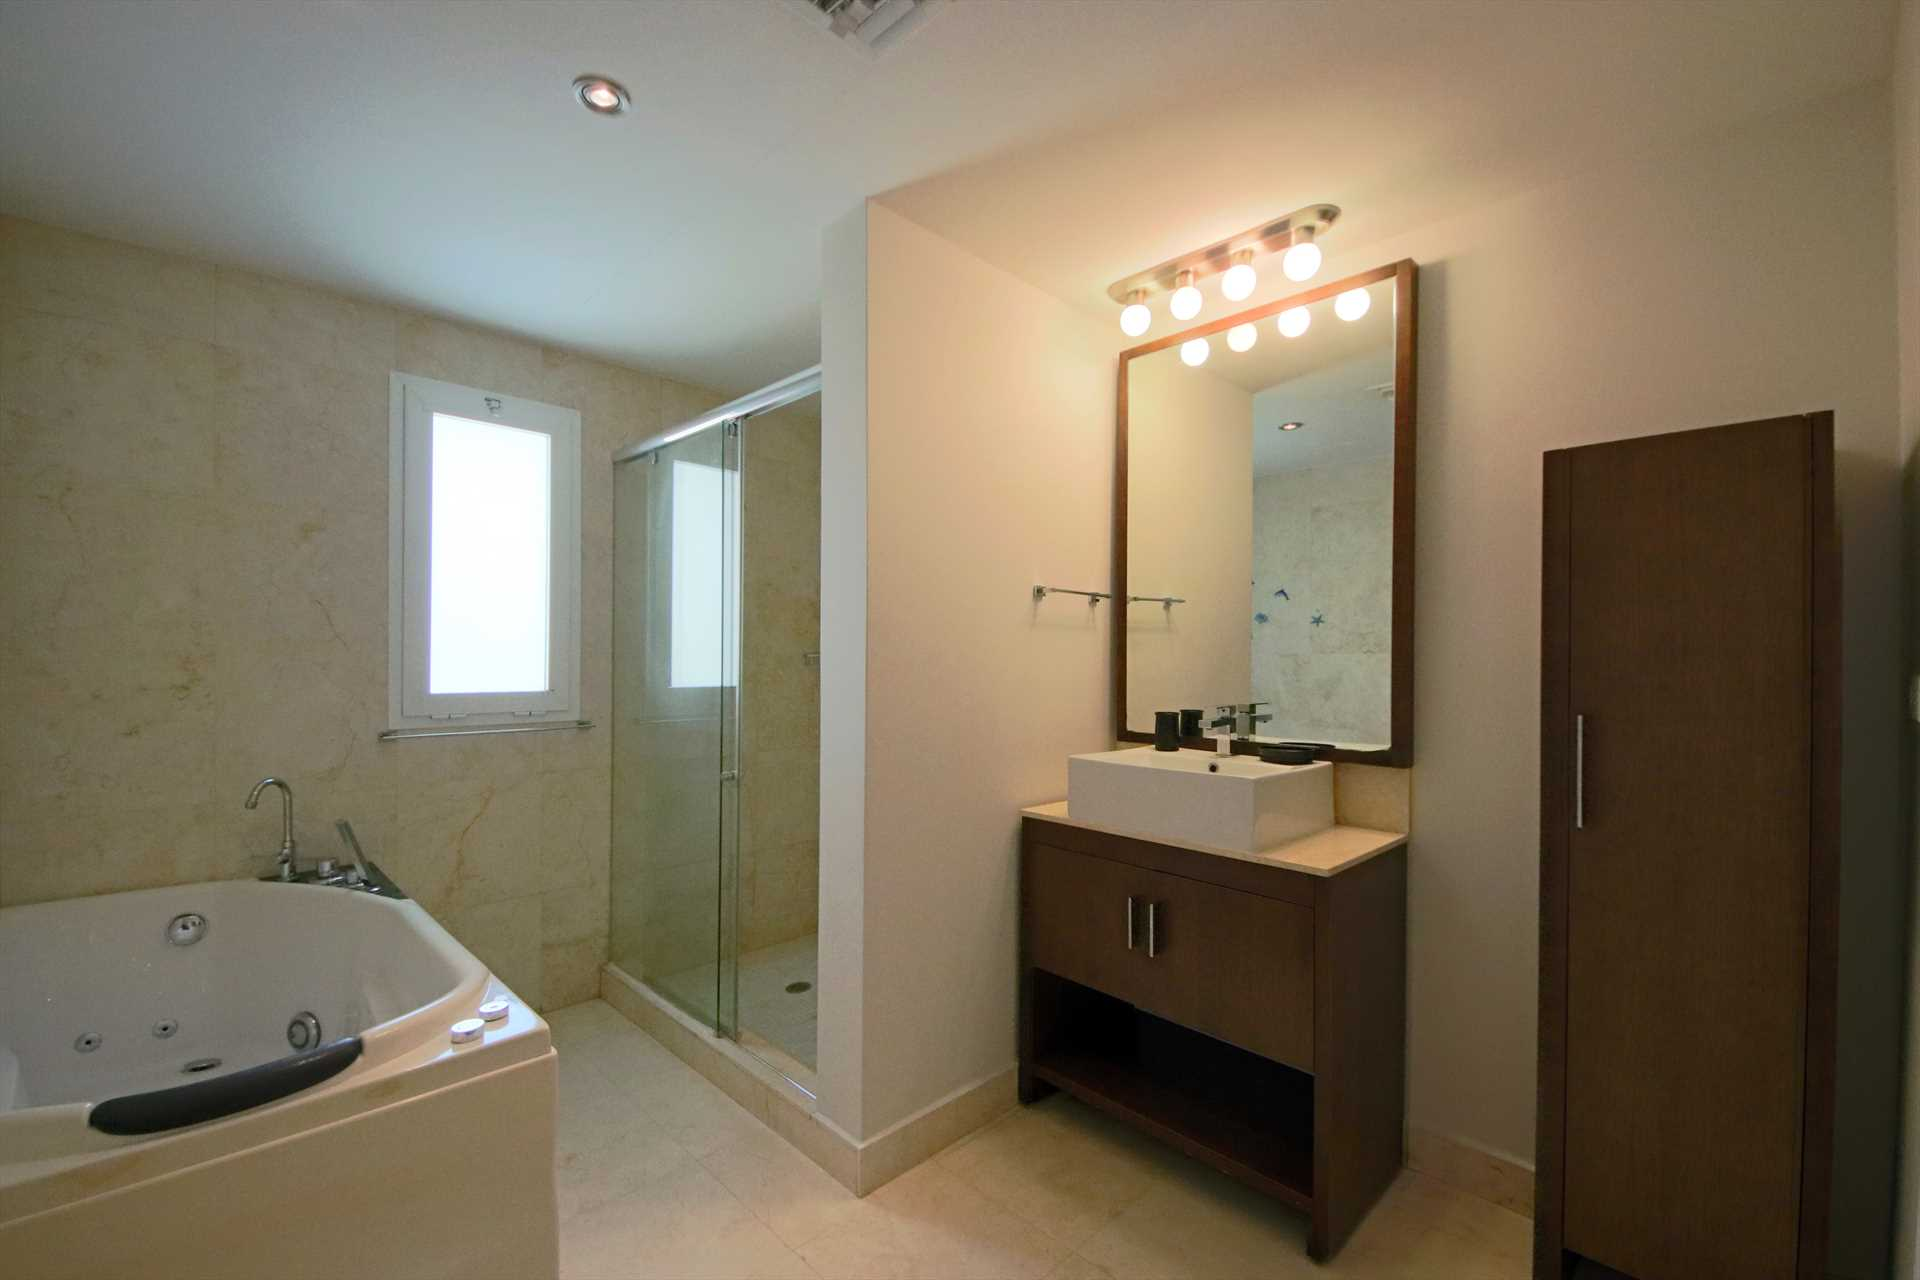 Master bedroom en-suite bathroom with shower and a jetted tub